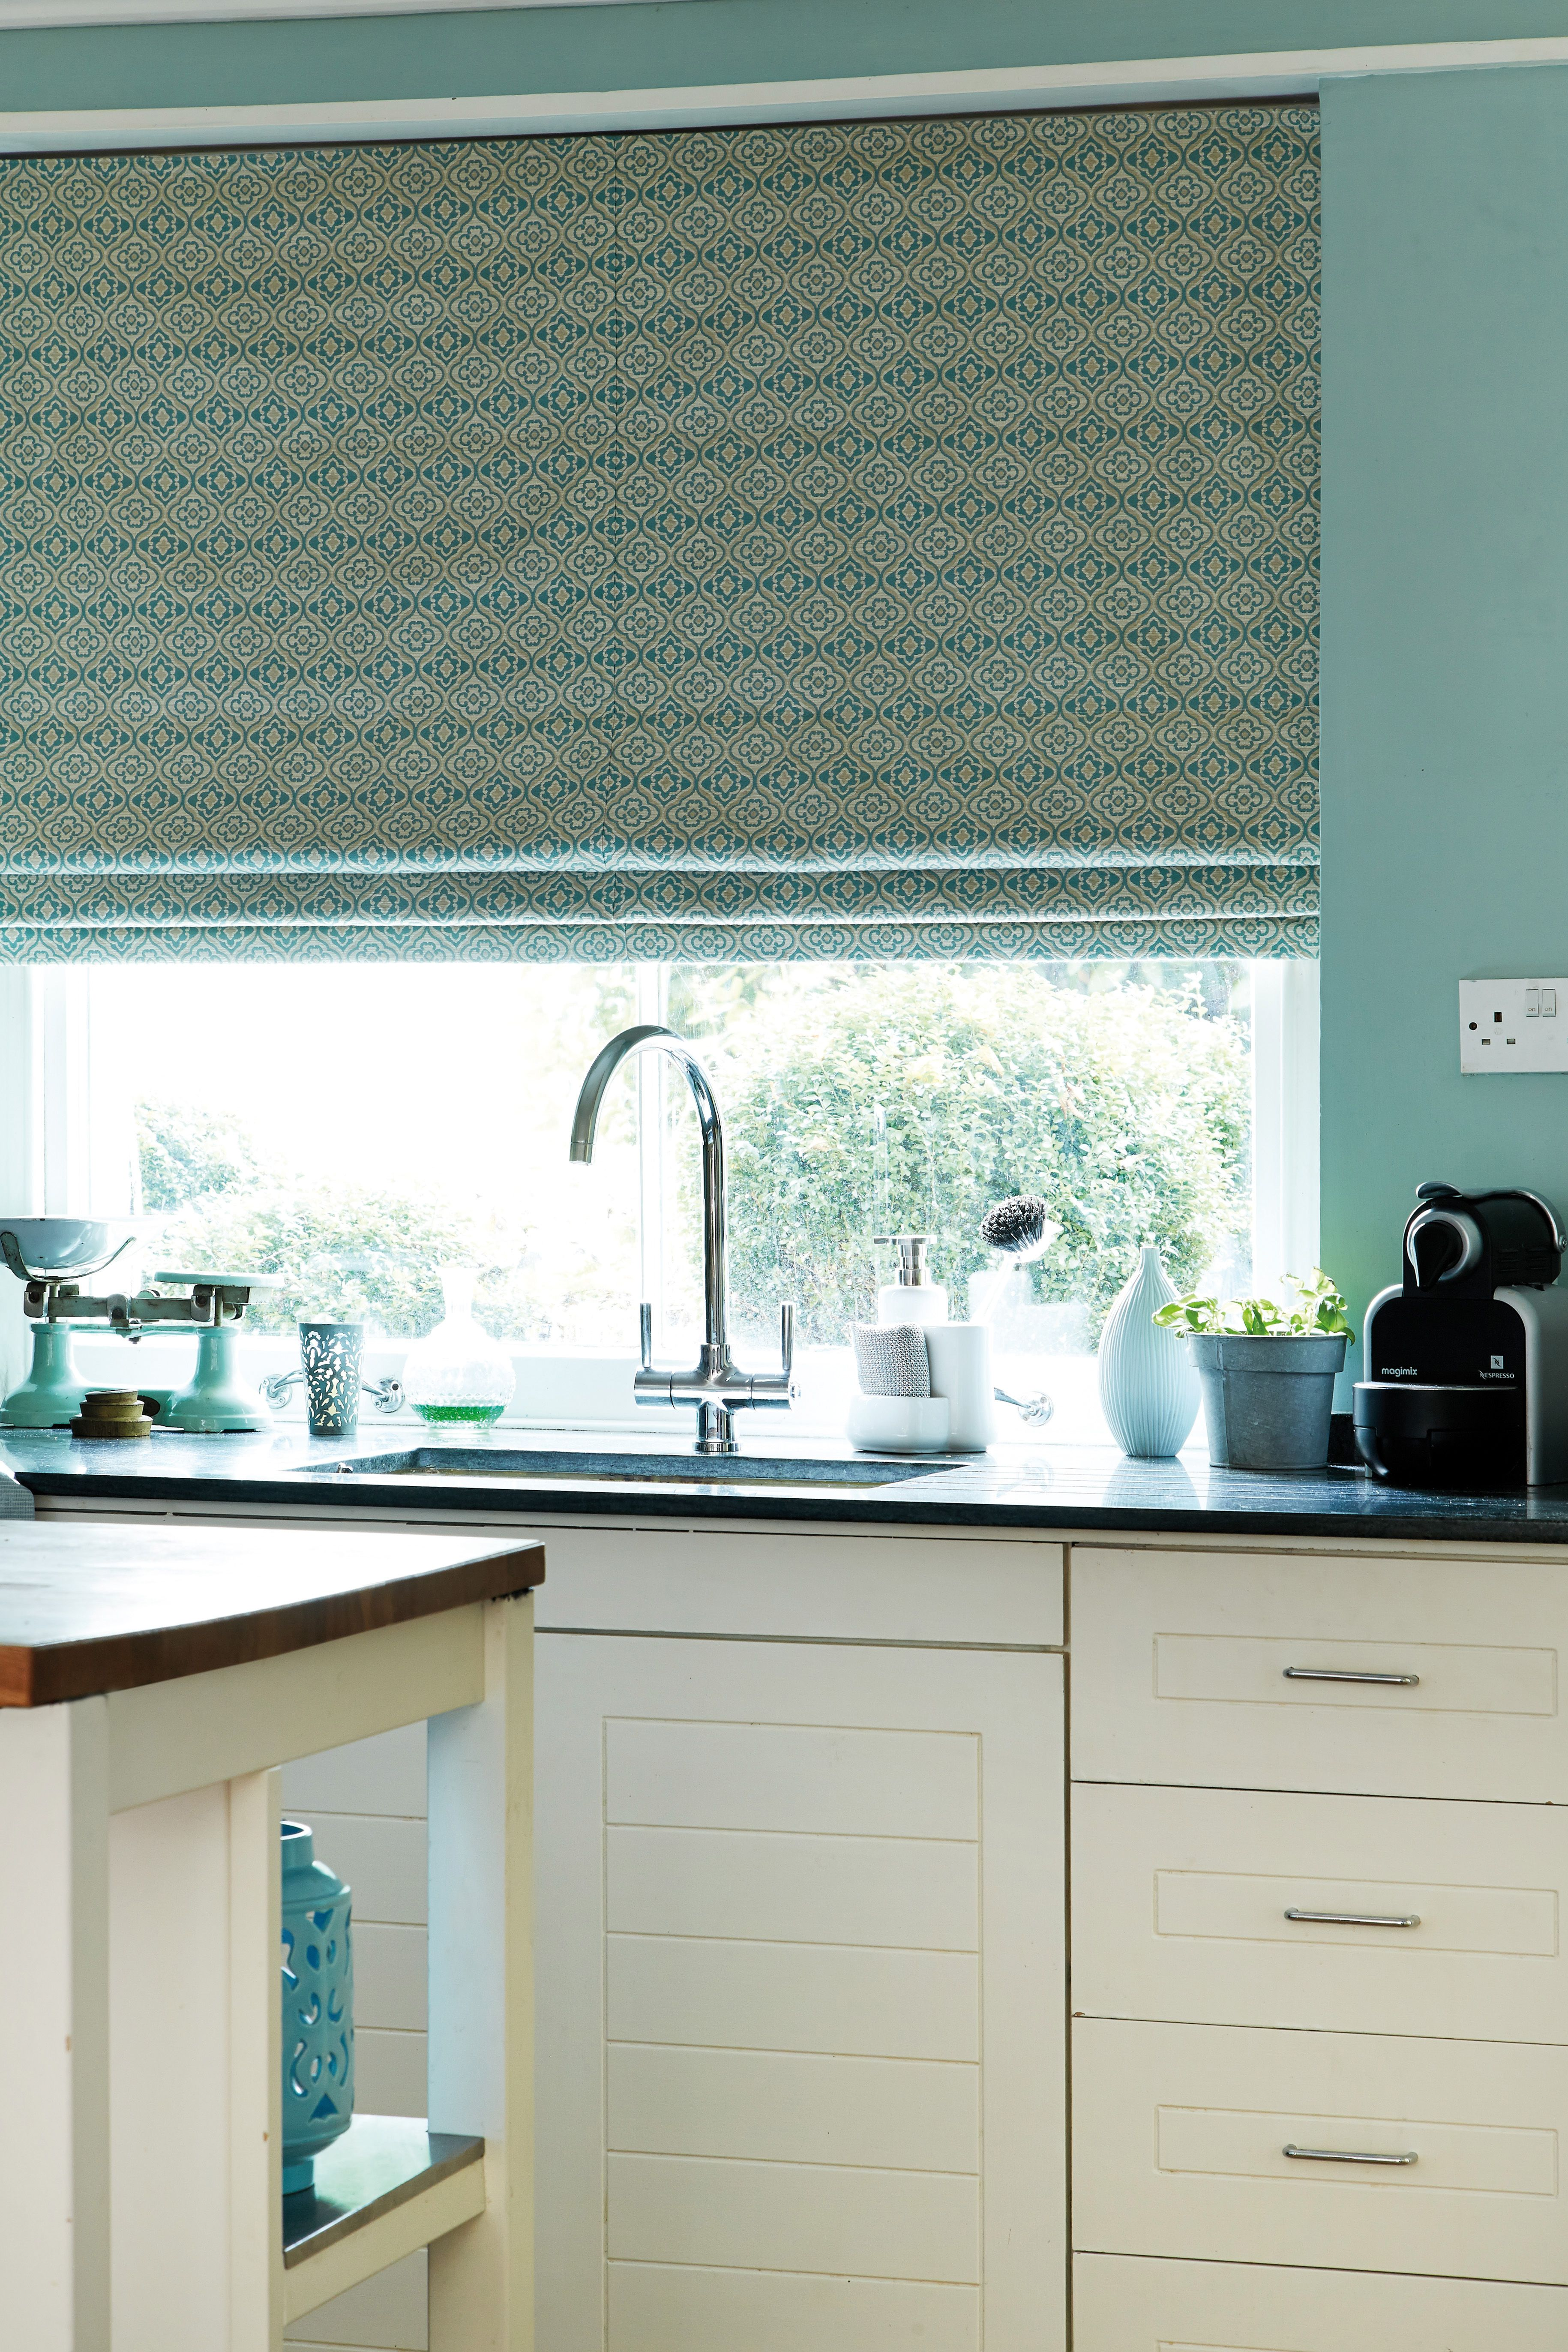 Create a fresh environment with our teal roman blinds. #romanblinds #tealblinds #home #interiordesign #kitchenblinds Please visit us at www.barnesblinds.co.uk